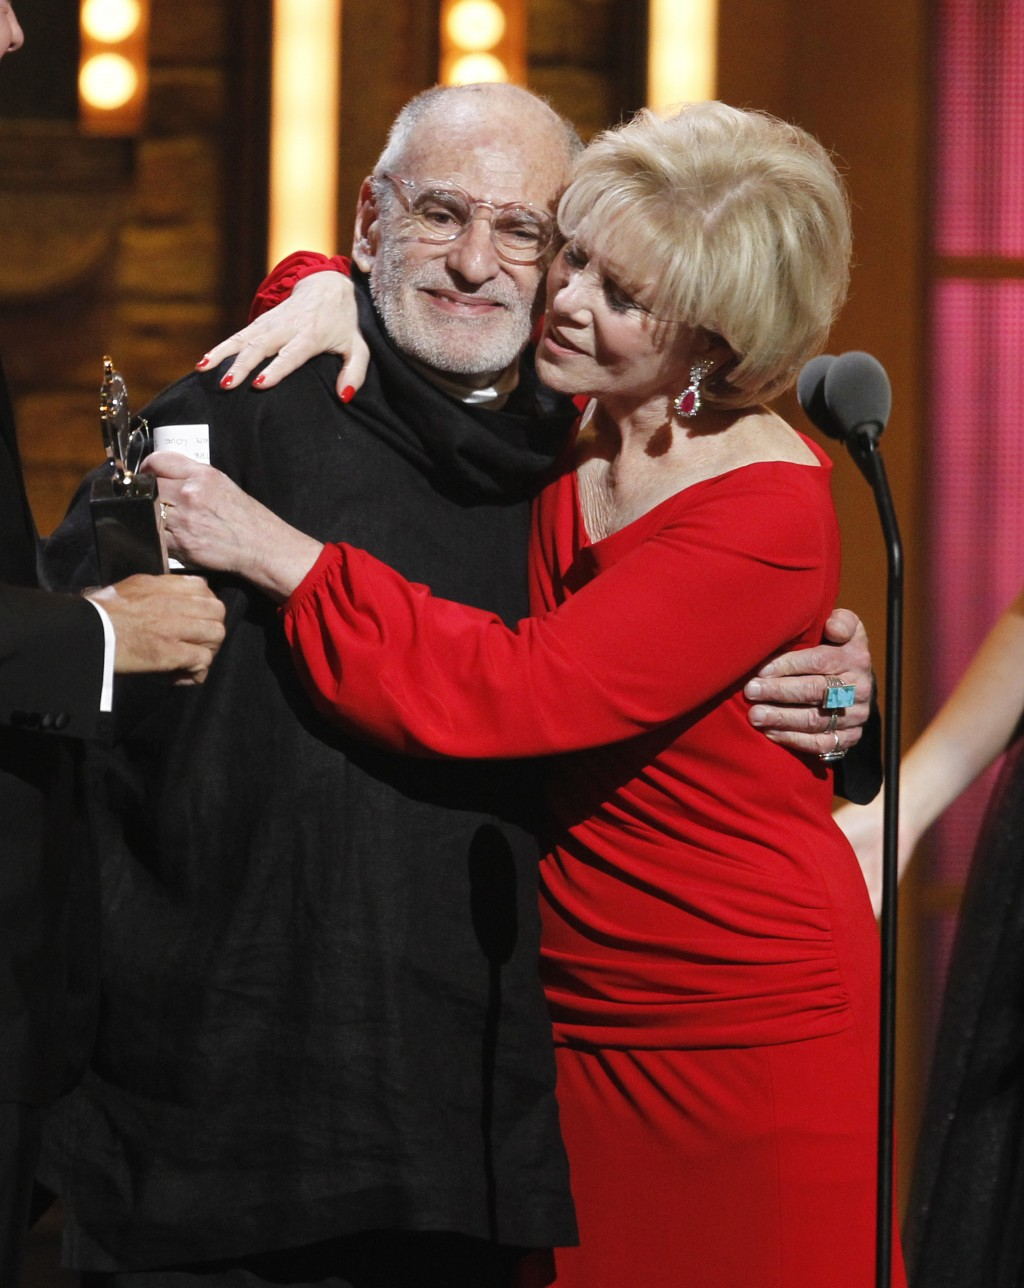 """FILE -This June 12, 2011 file photo shows Larry Kramer, left, and Daryl Roth embracing after they won the Tony Award for Best Revival of a Play for """"T..."""